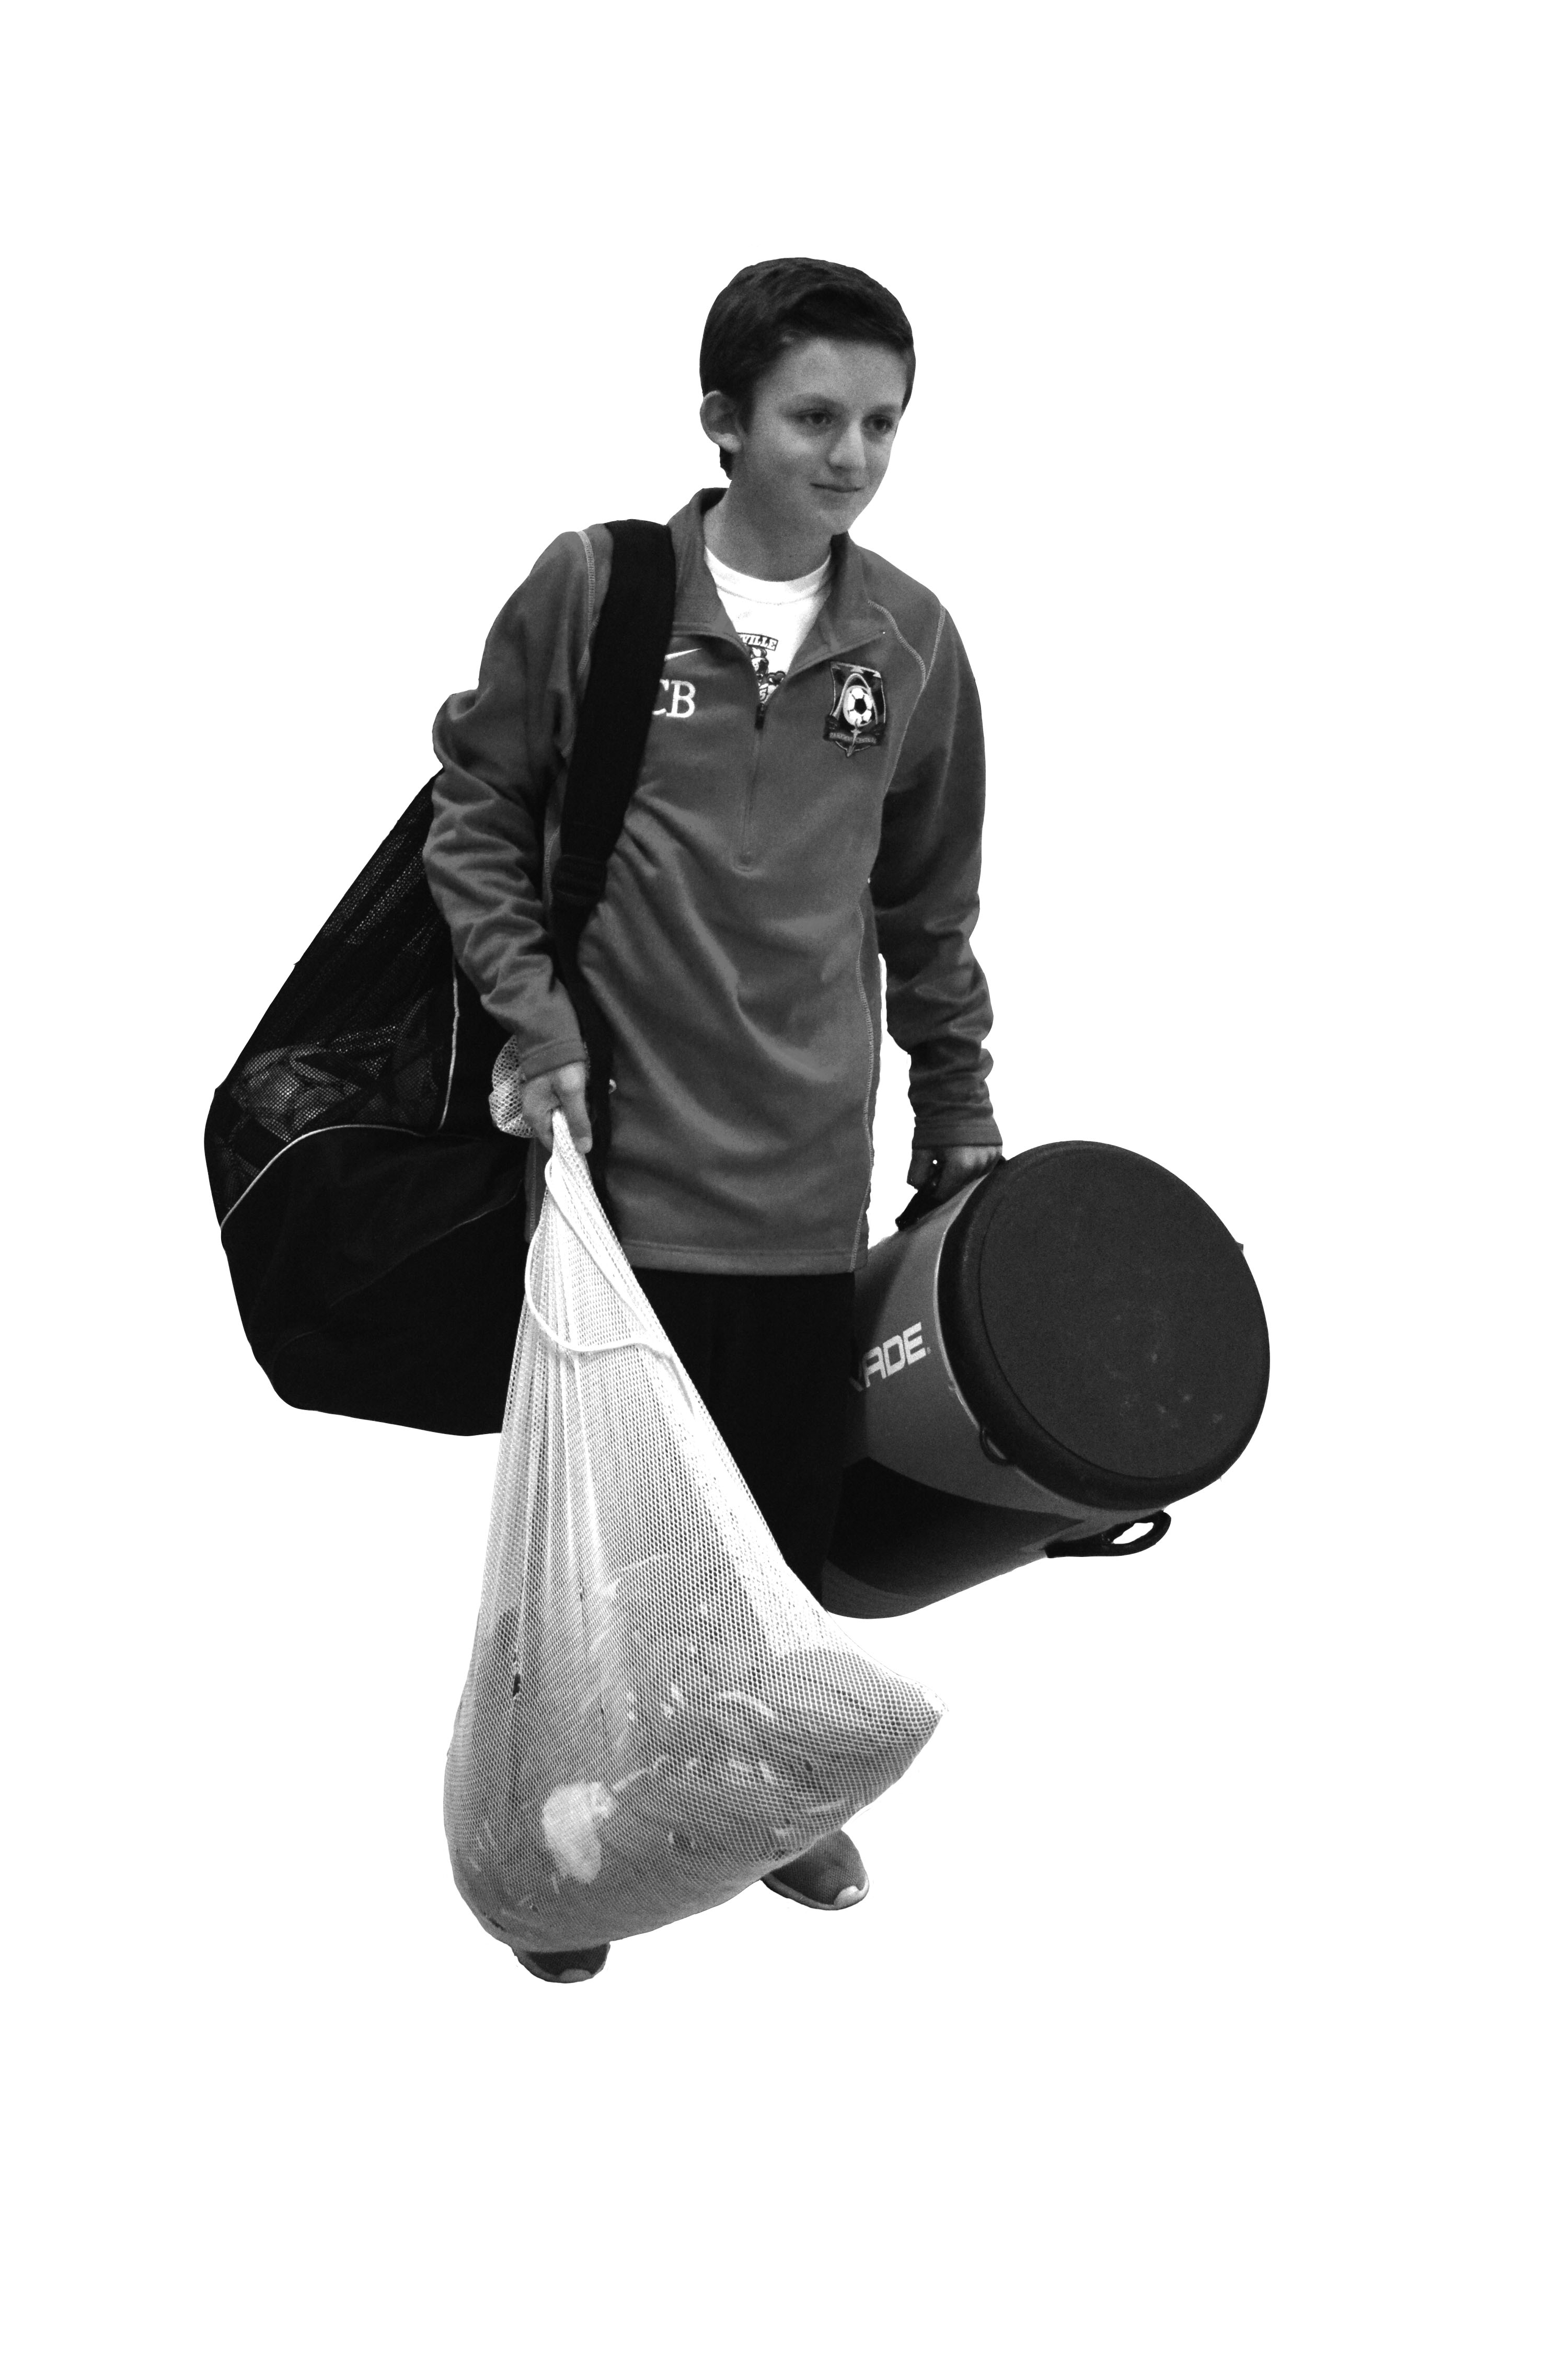 Sometimes freshmen are responsible for carrying much more equipment than the can handle, as illustrated here by freshman Cam Baird. Photo by Dean Trail